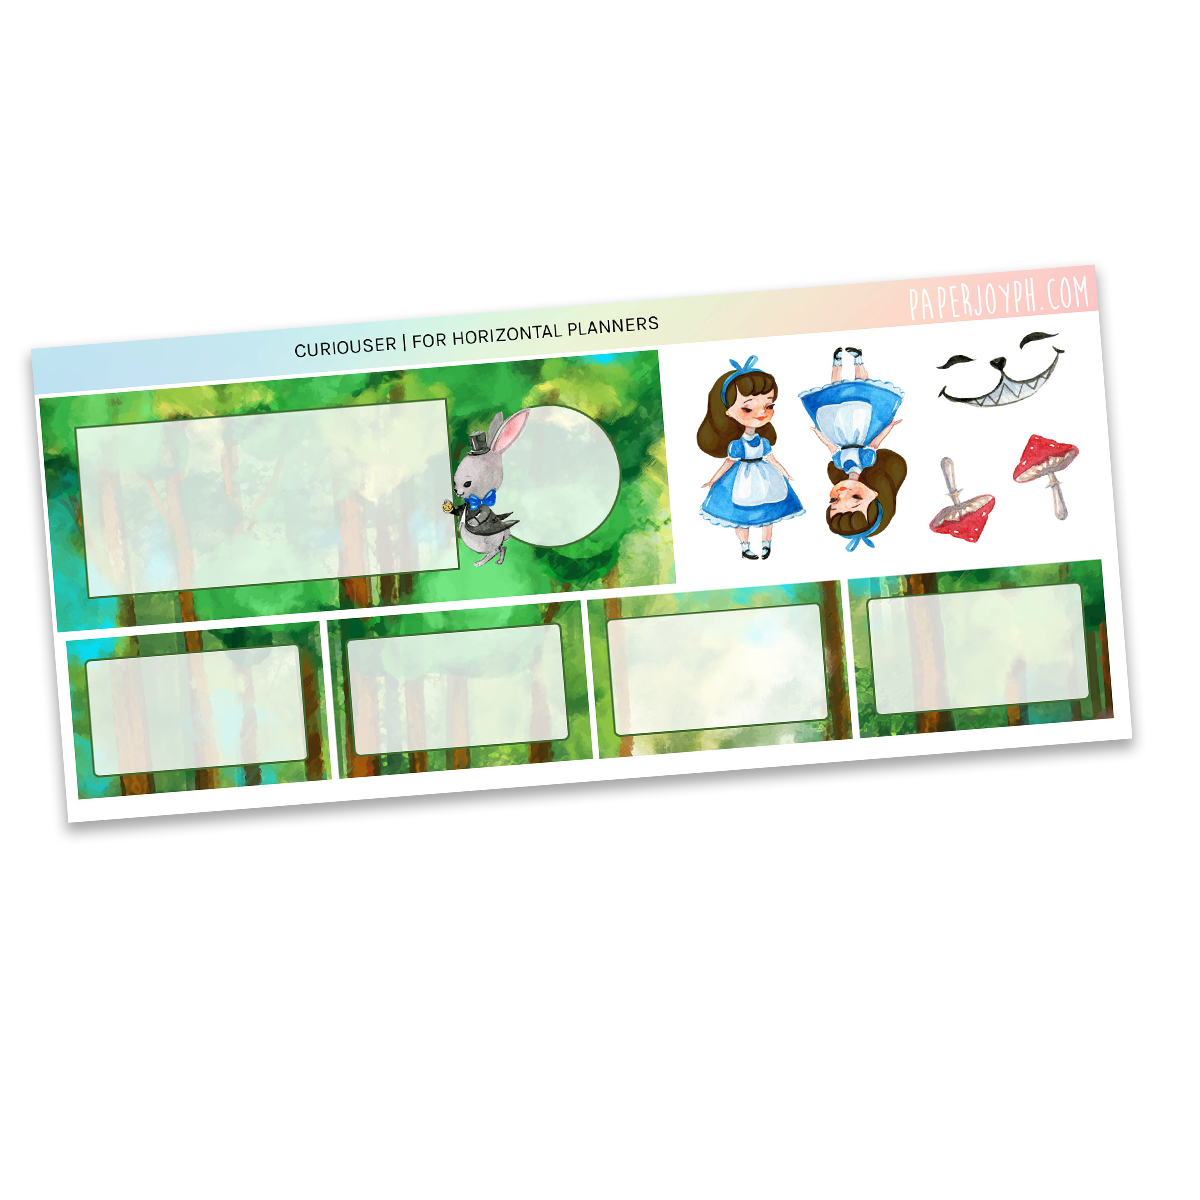 HORIZONTAL PLANNER STICKER KIT | Curiouser